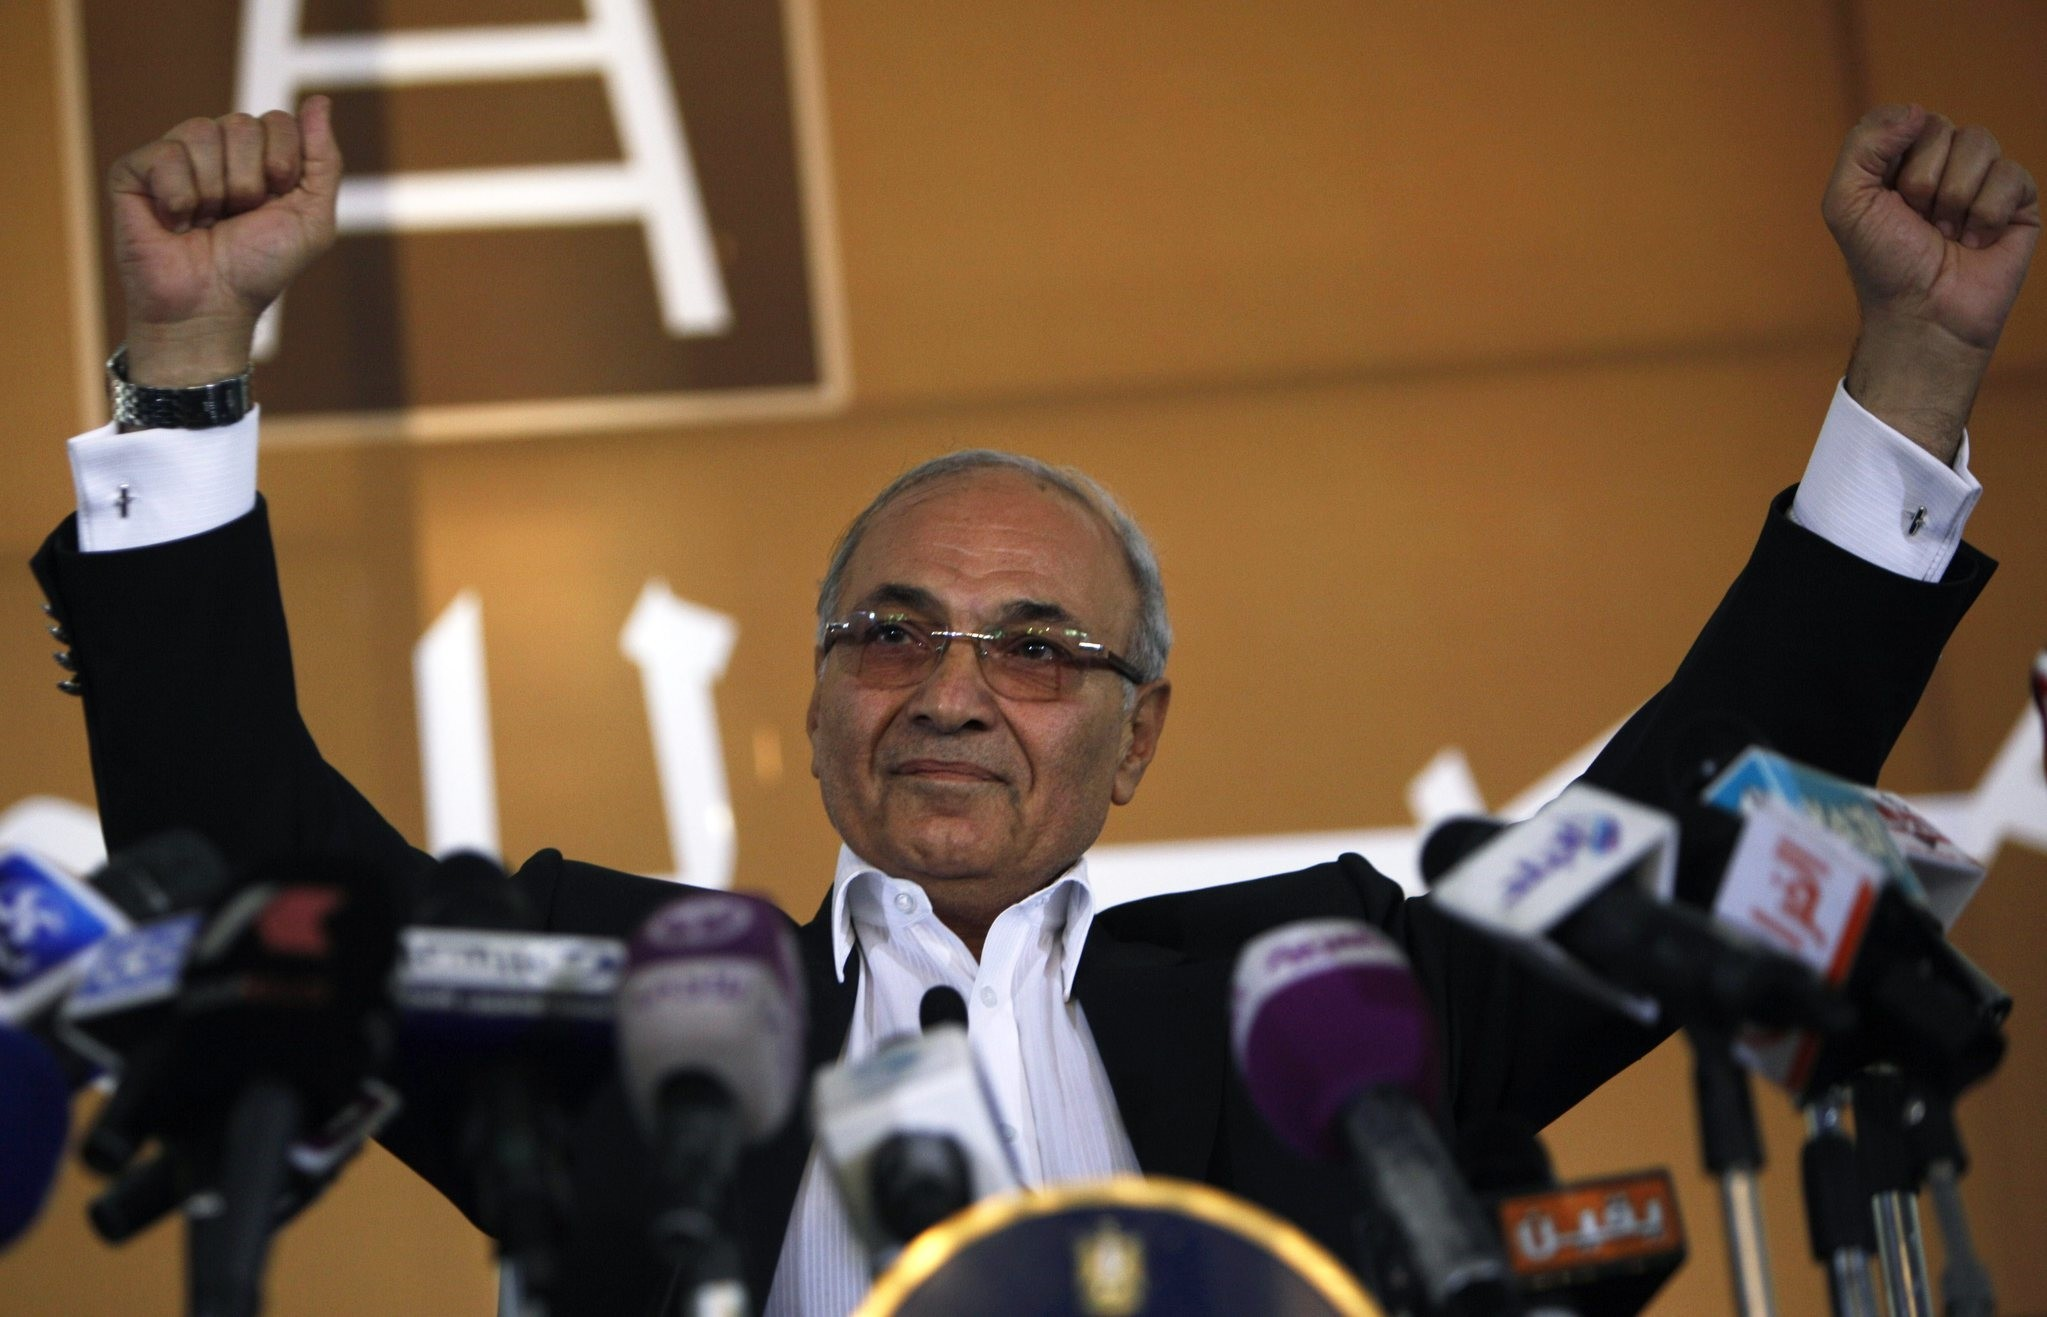 Egyptian presidential candidate Ahmed Shafiq addresses his supporters during an election rally in Cairo, Egypt, Thursday, June 14, 2012. (AP Photo)